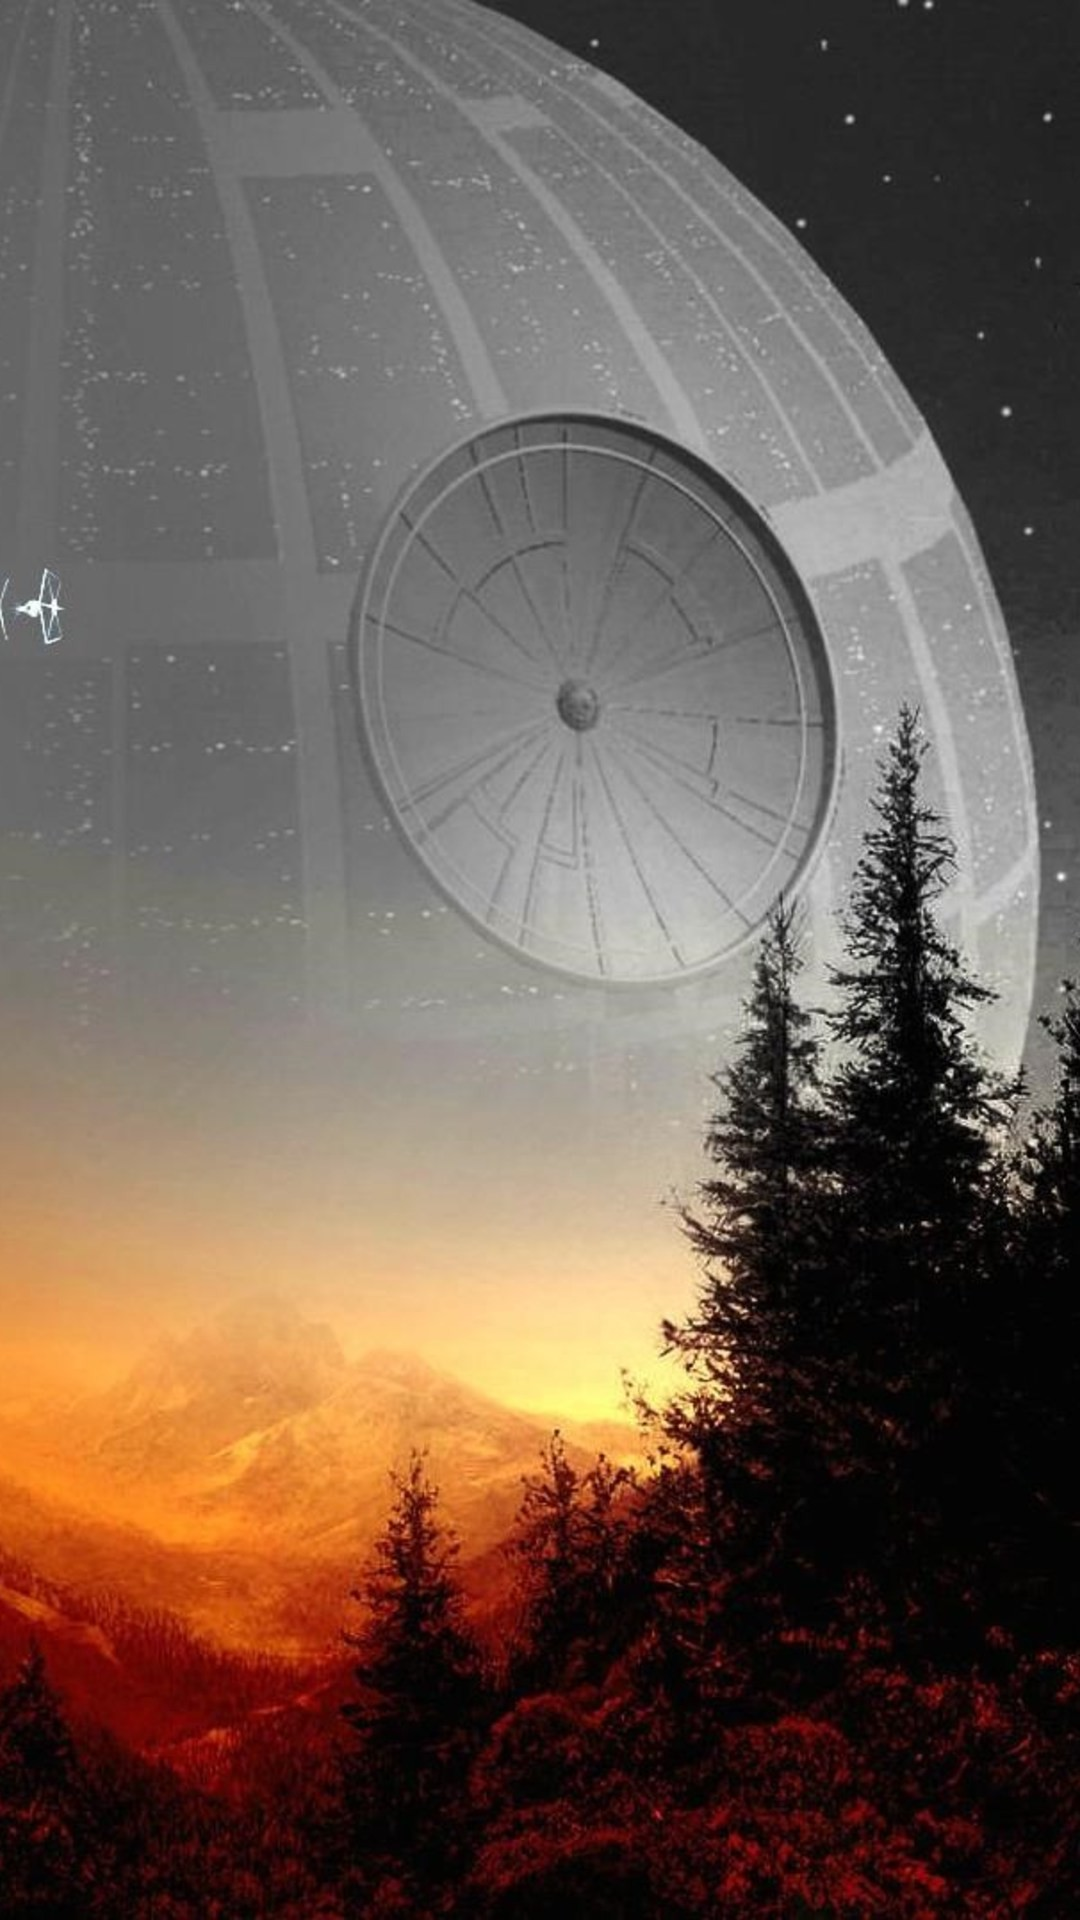 Star Wars Wallpapers Iphone Hd Get Images